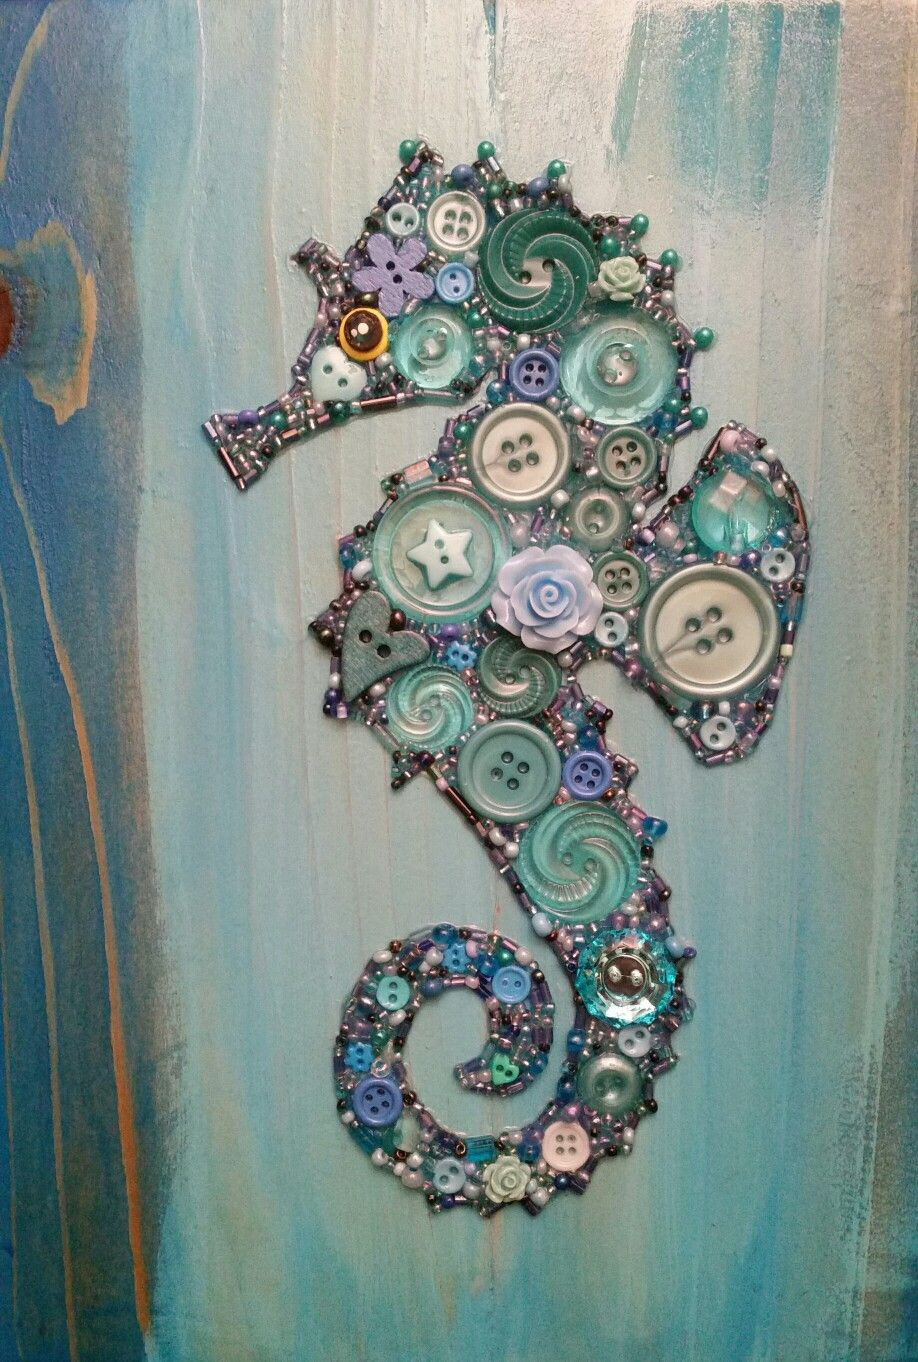 Best ideas about Art And Crafts . Save or Pin Button Art Seahorse on Recycled Wood with Acrylic Paint Now.